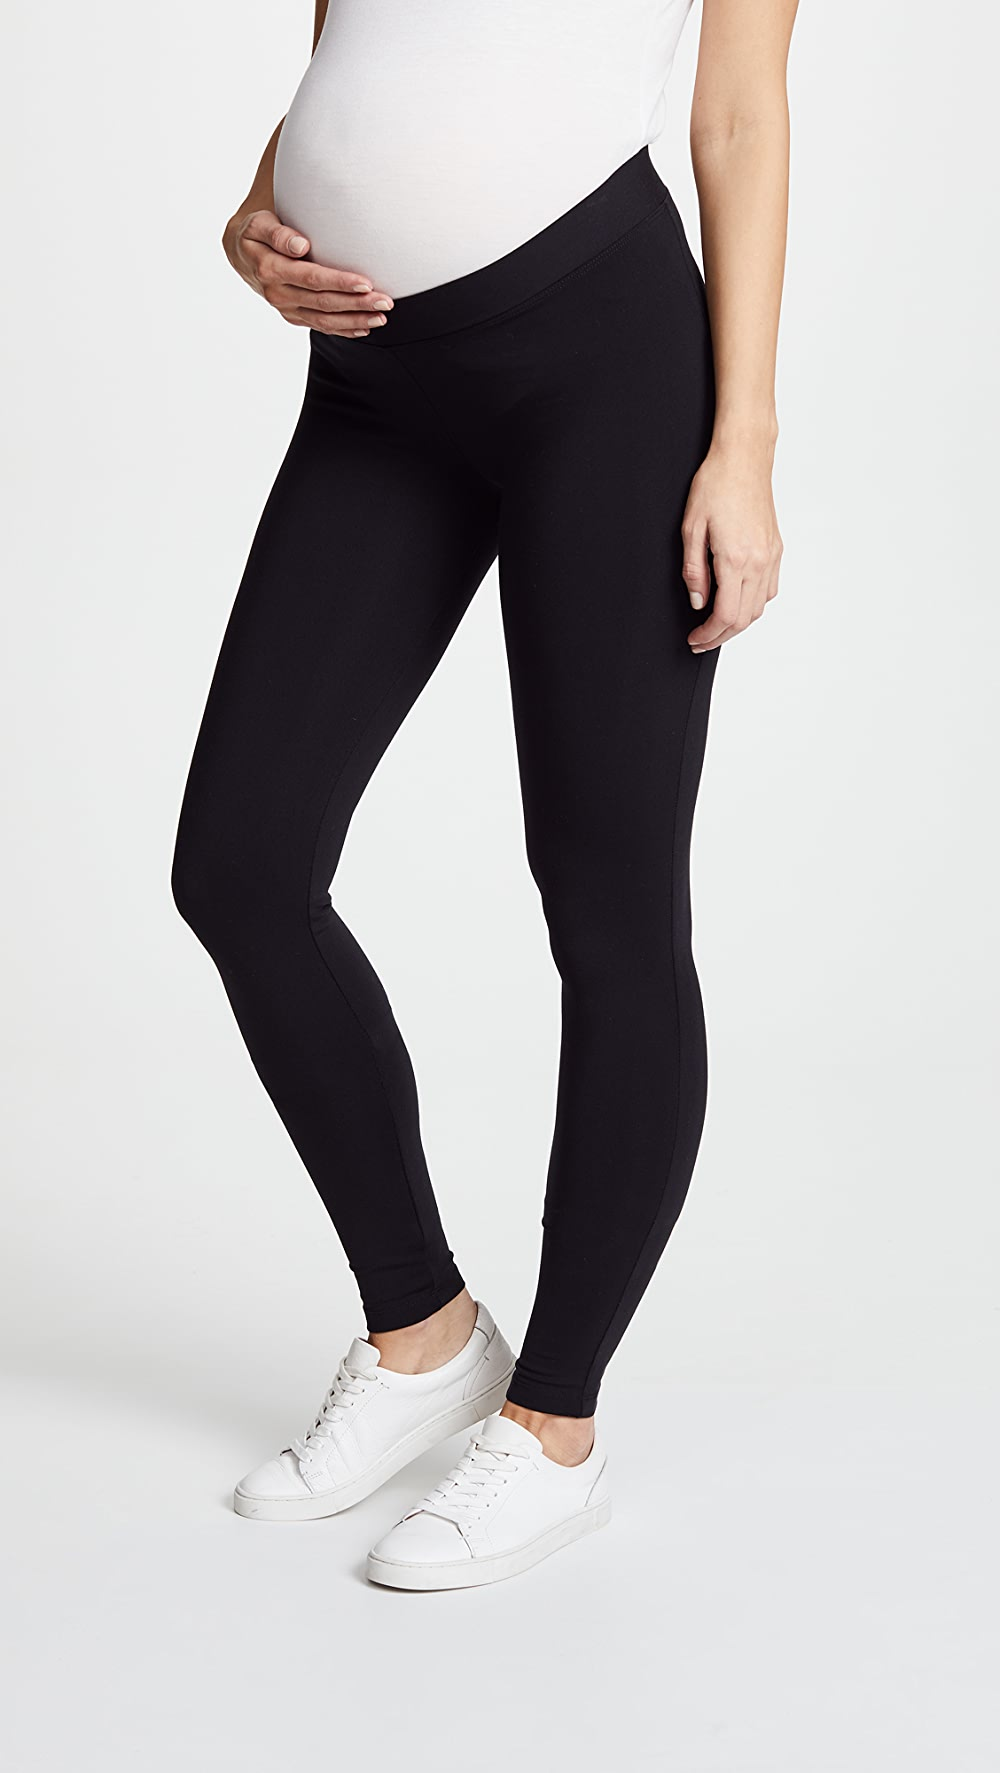 Hearty Hatch - The Premium Leggings Quality And Quantity Assured